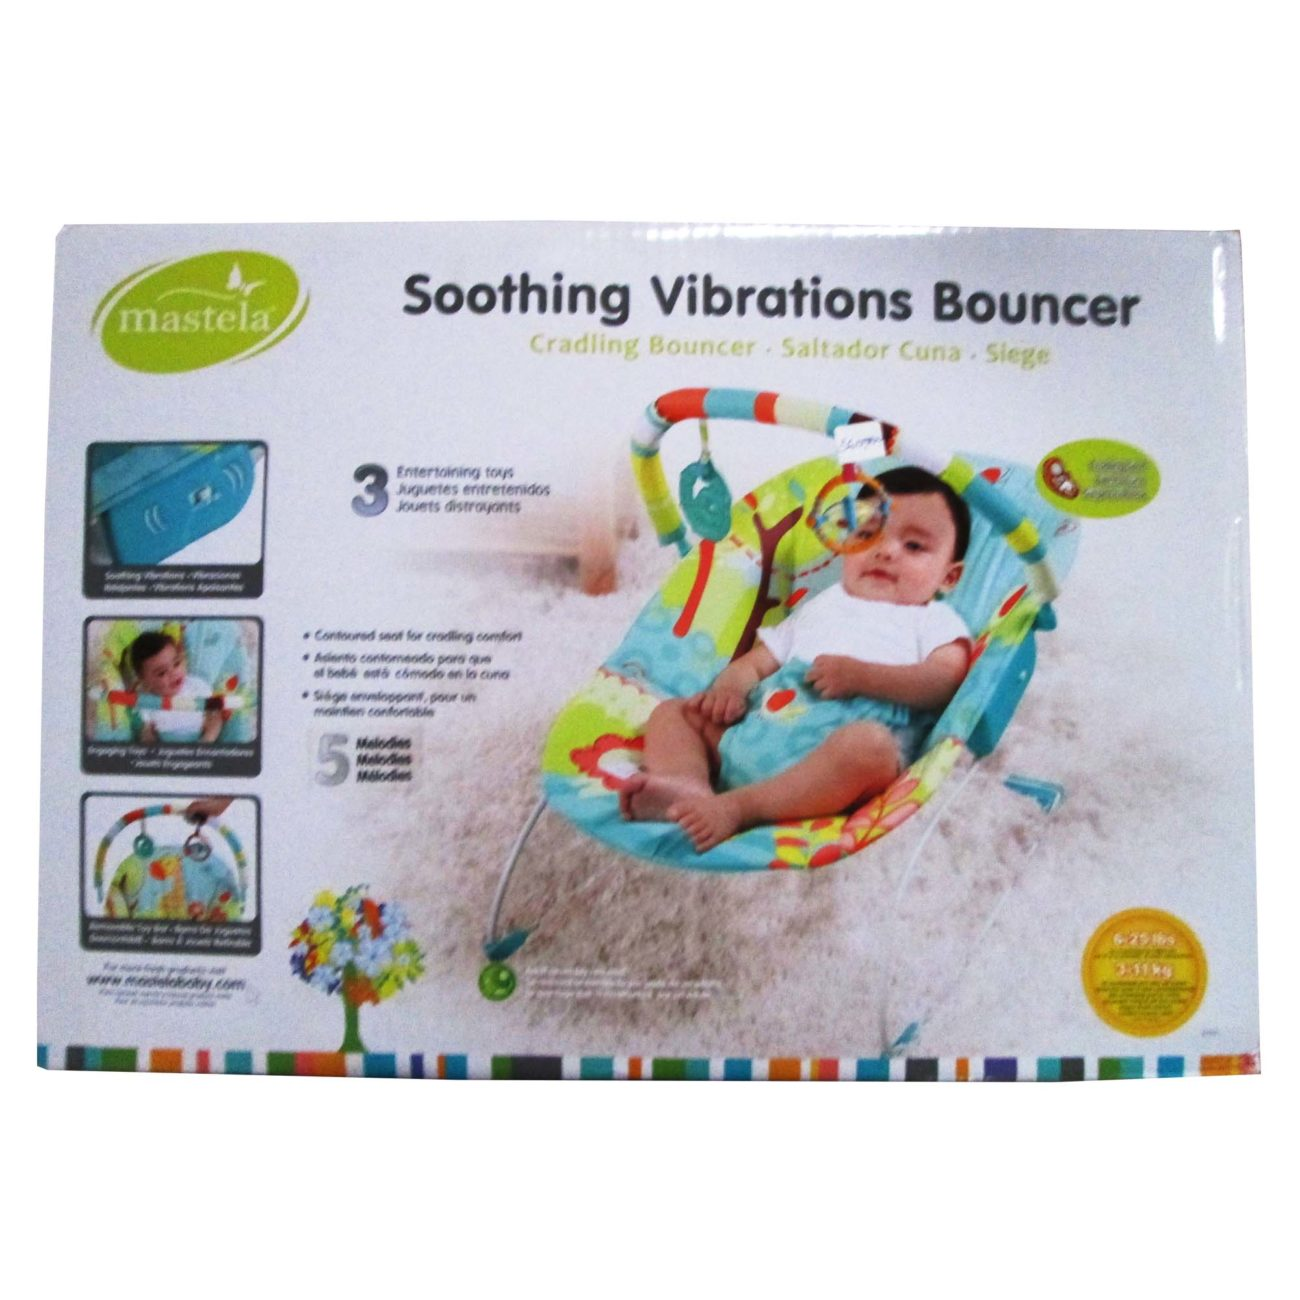 Bouncer Baby Soothing Vibrations Bouncer Baby Bouncer